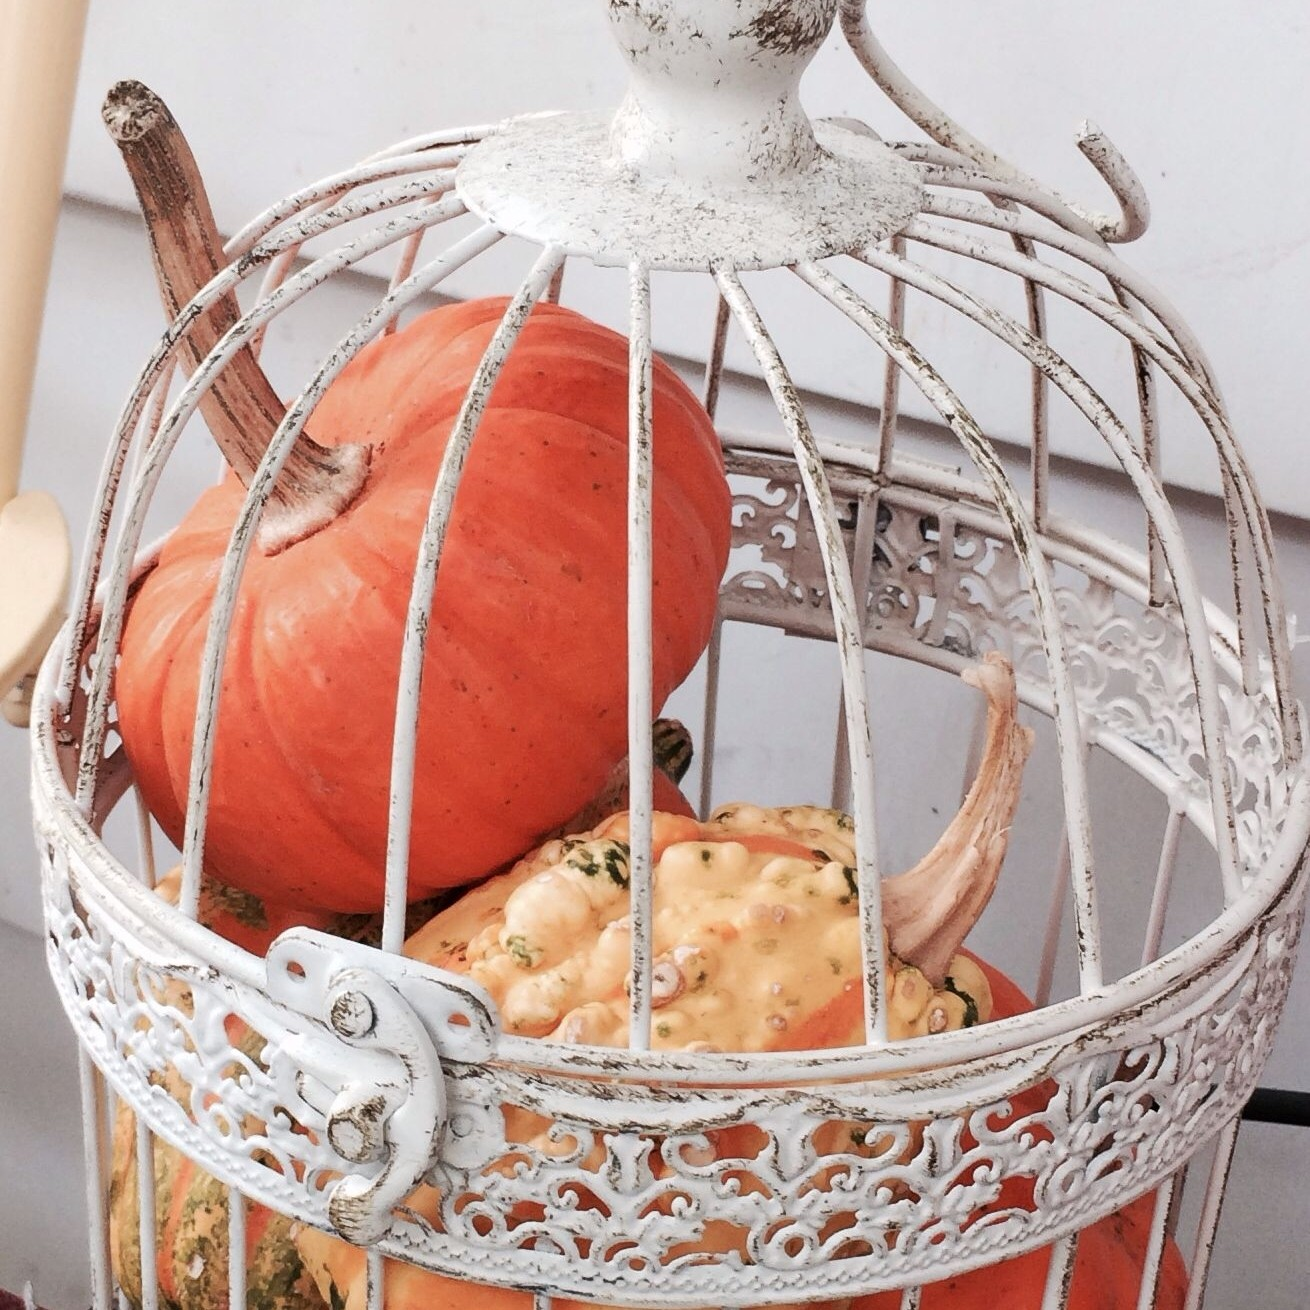 Make Your Home Spooktacular this Halloween